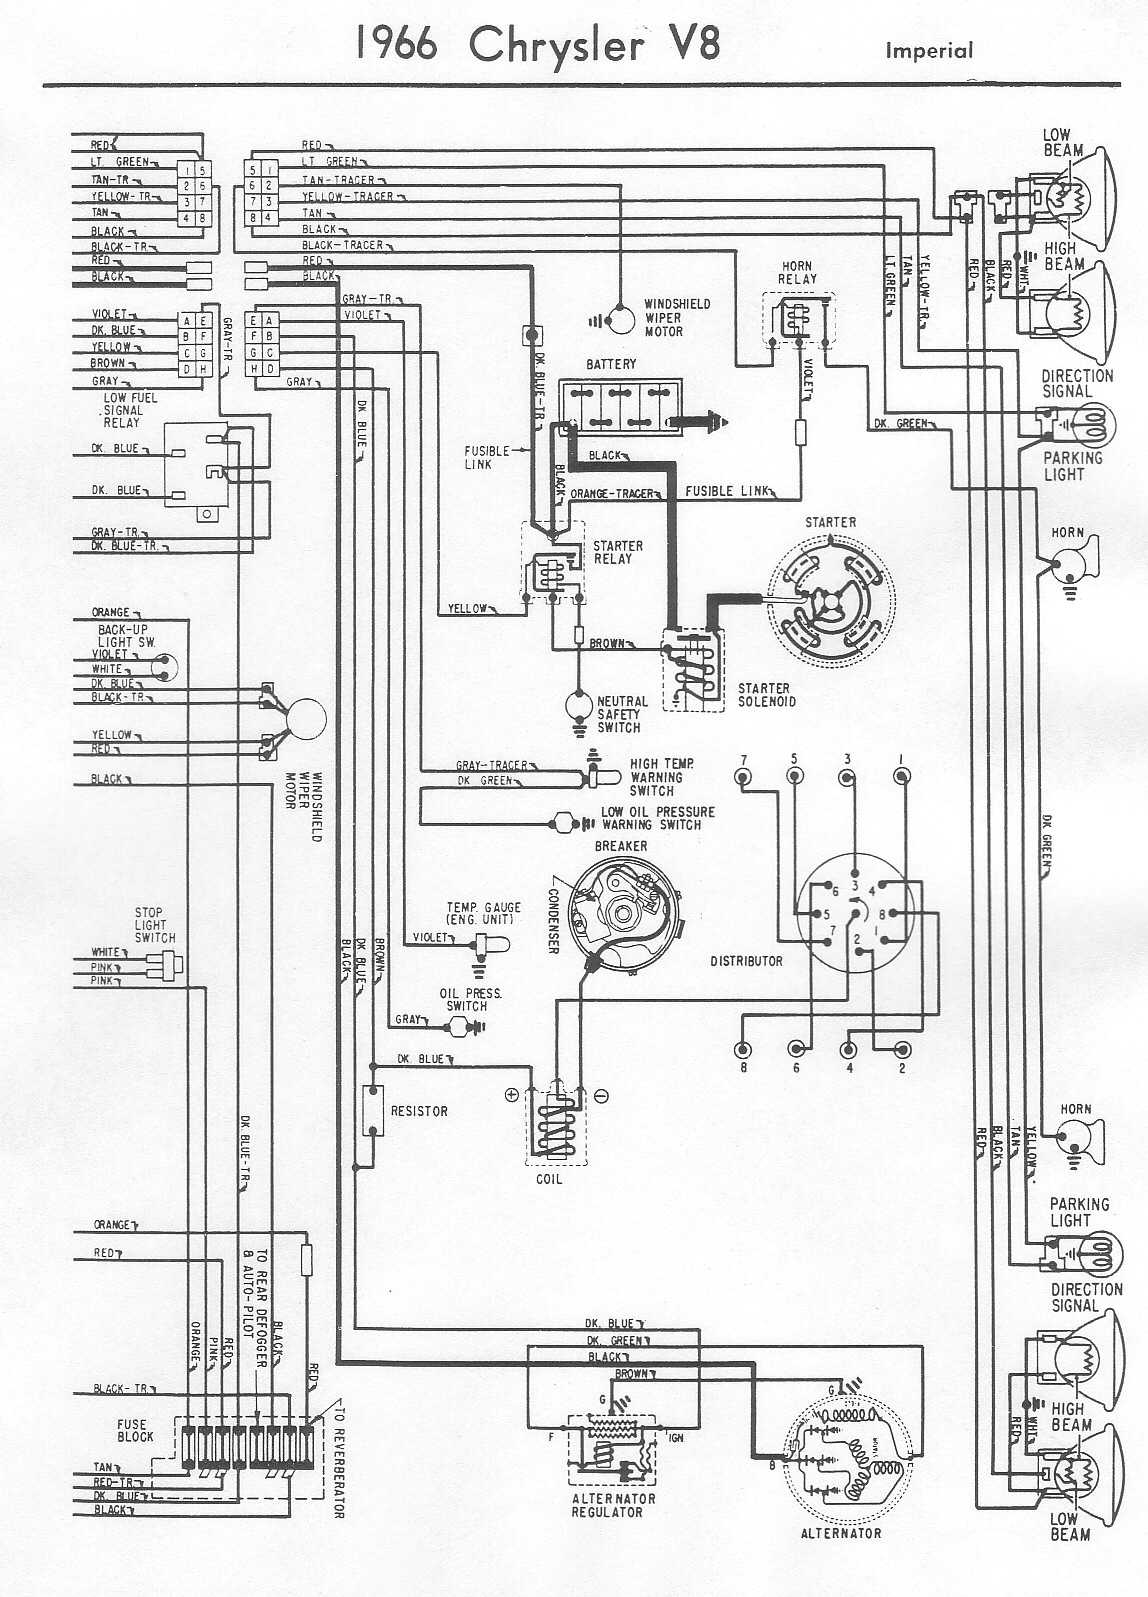 1969 Gtx Wiring Diagram likewise Ign switch besides Showthread as well Vacuum Diagram 1970 Cadillac further P 0900c1528007dbe6. on 1969 camaro wiring diagram